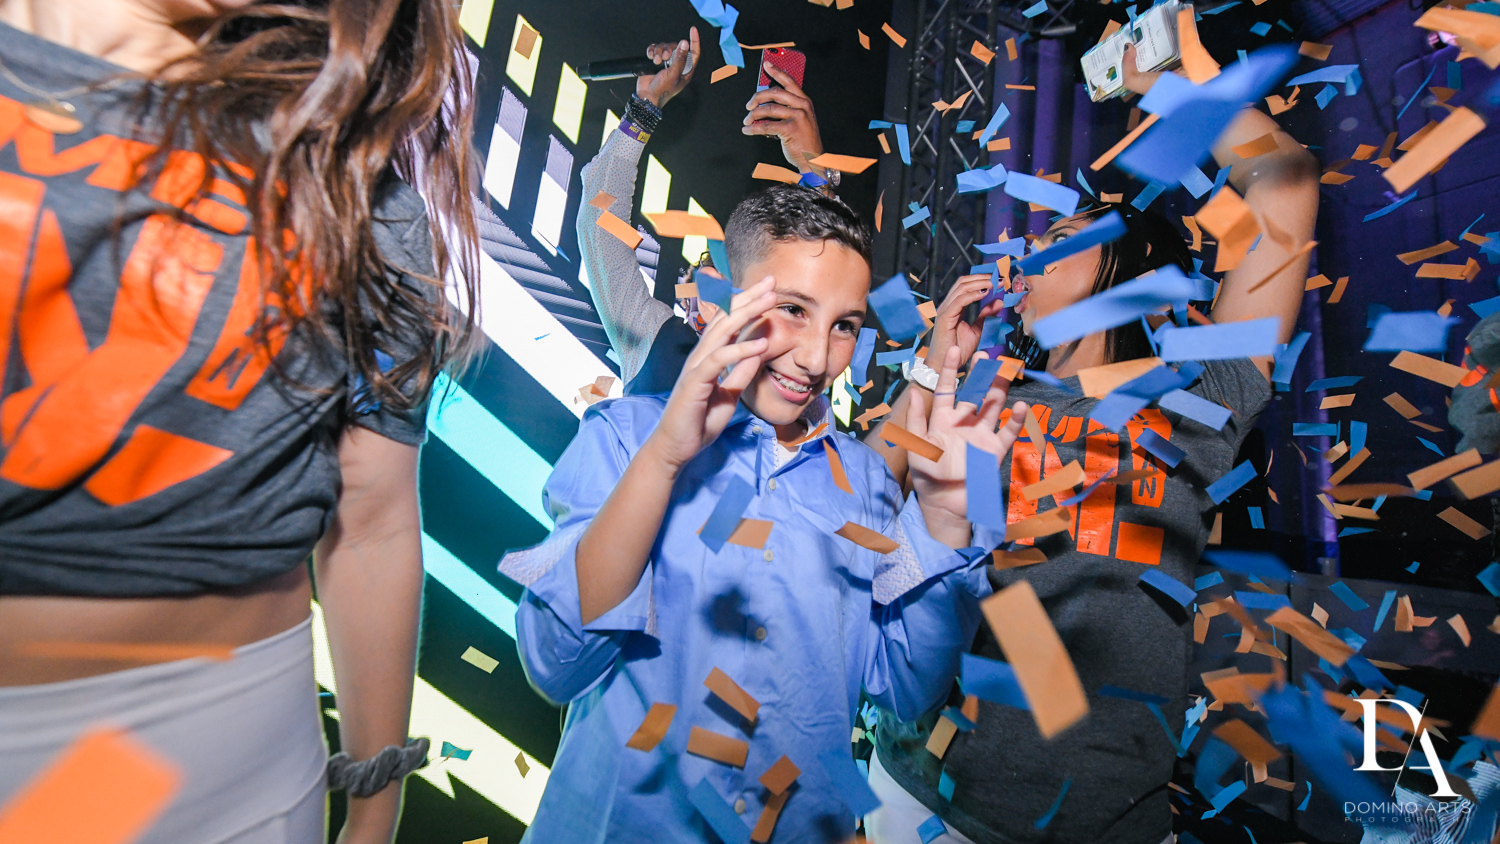 party confetti at Sports Theme Bar Mitzvah at DS Sports Plex by Domino Arts Photography